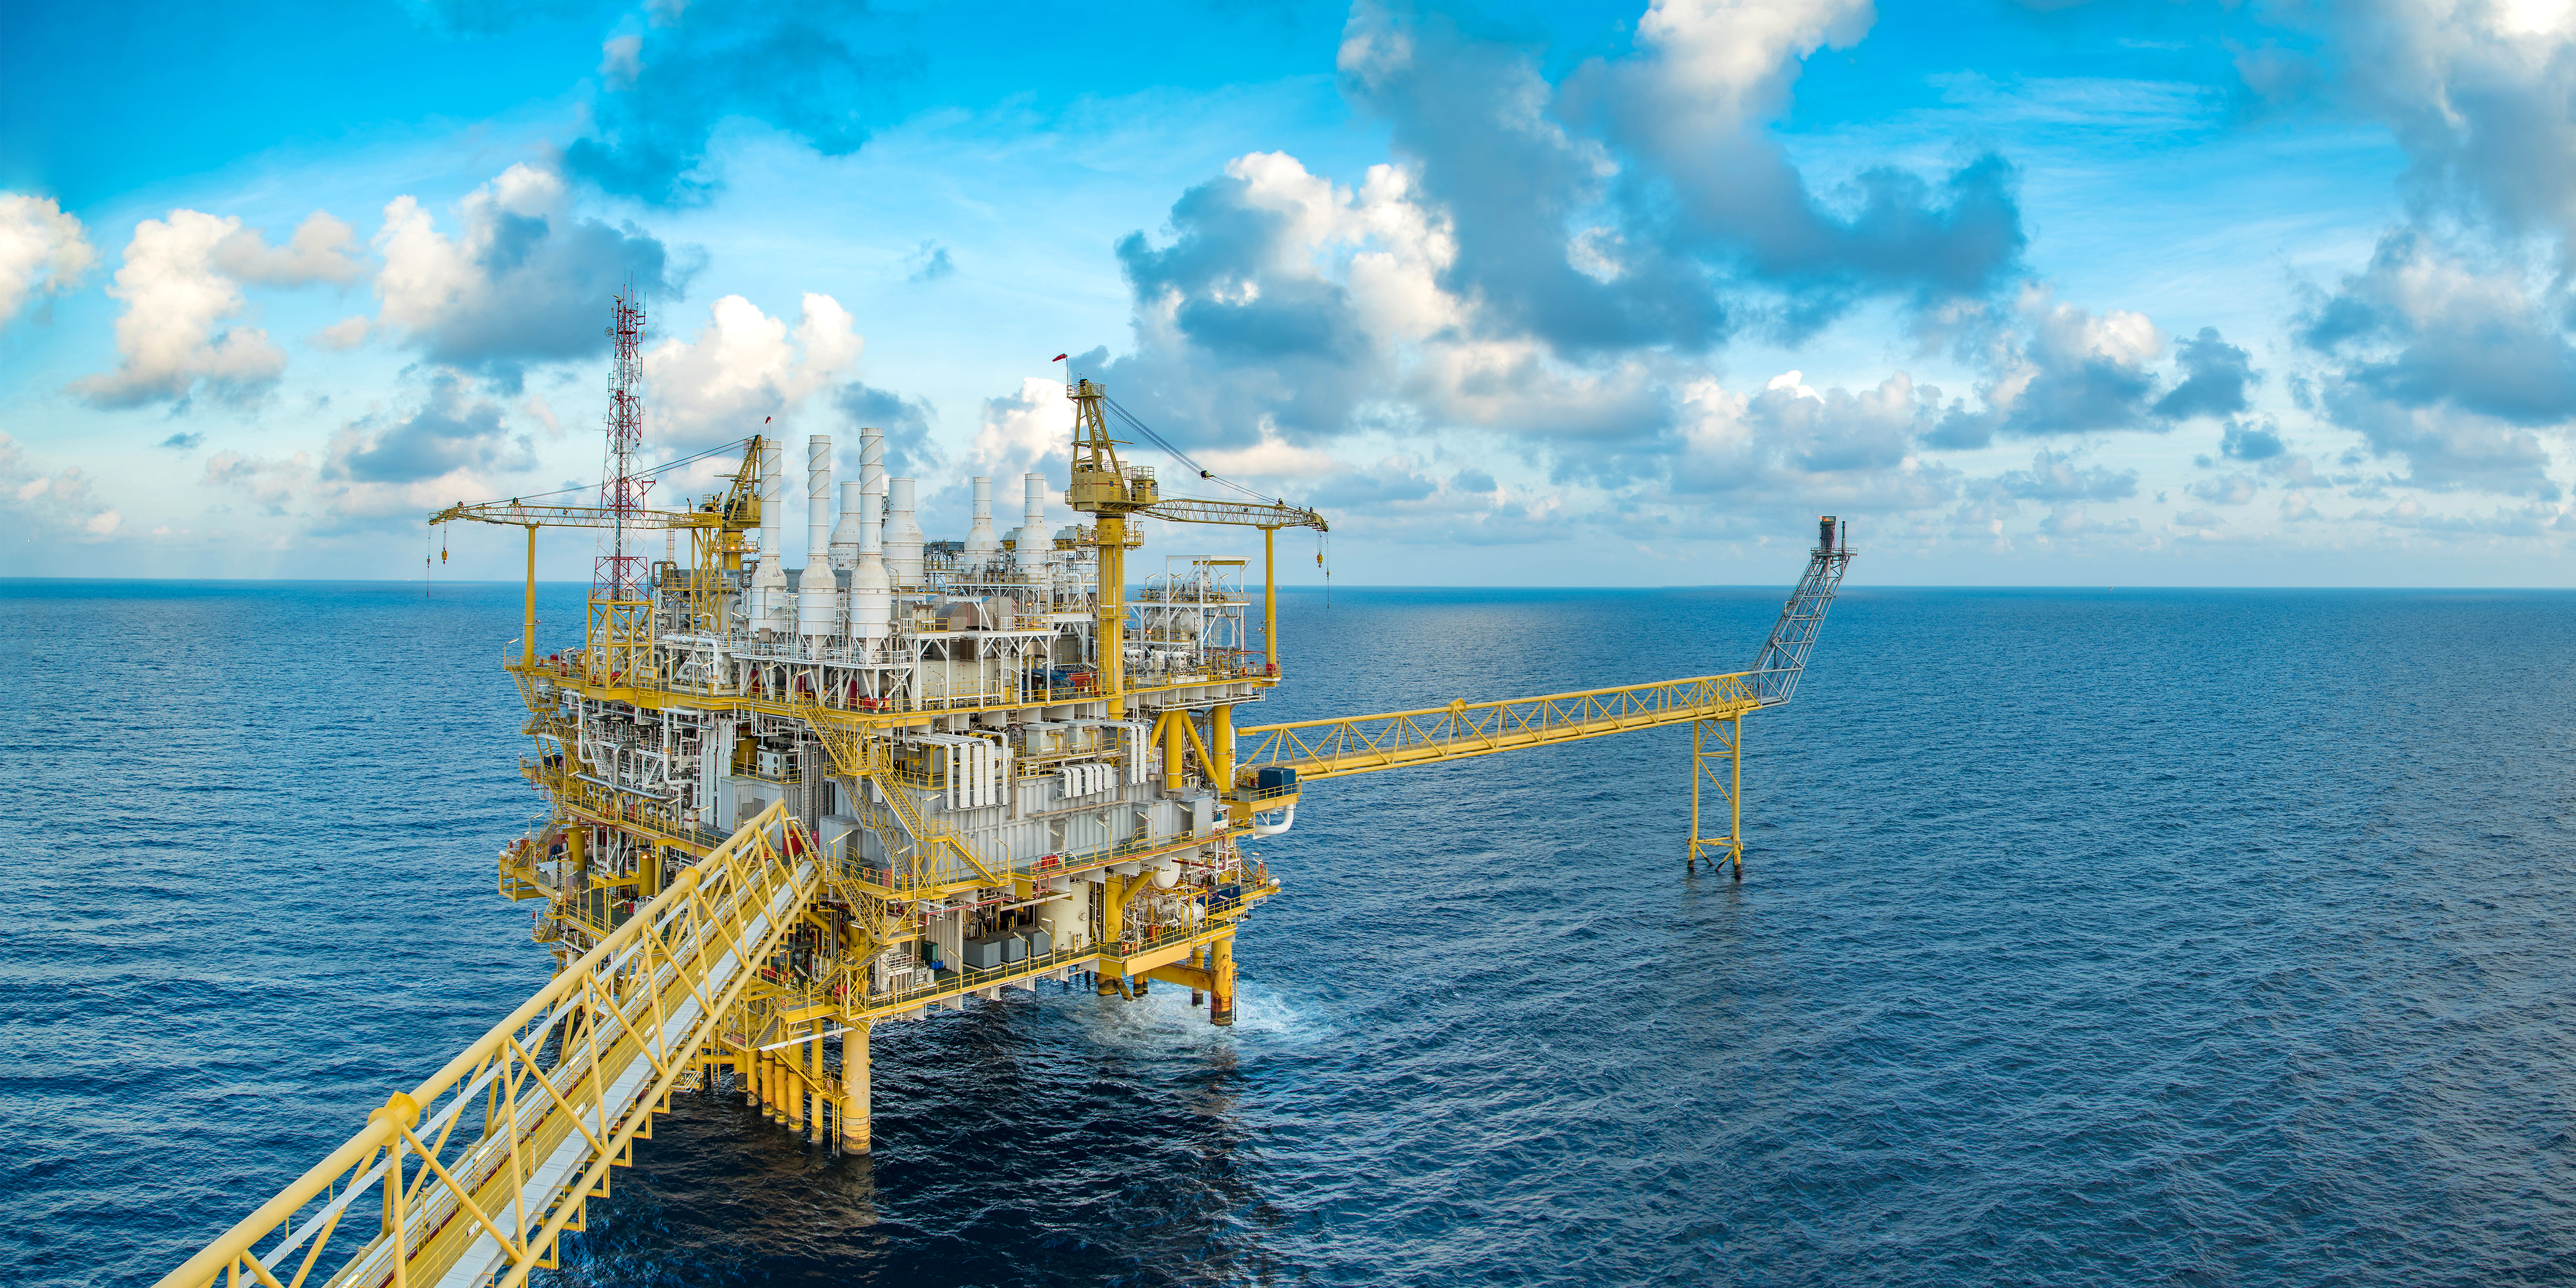 SABIC Commissioning Activities For Exxon JV